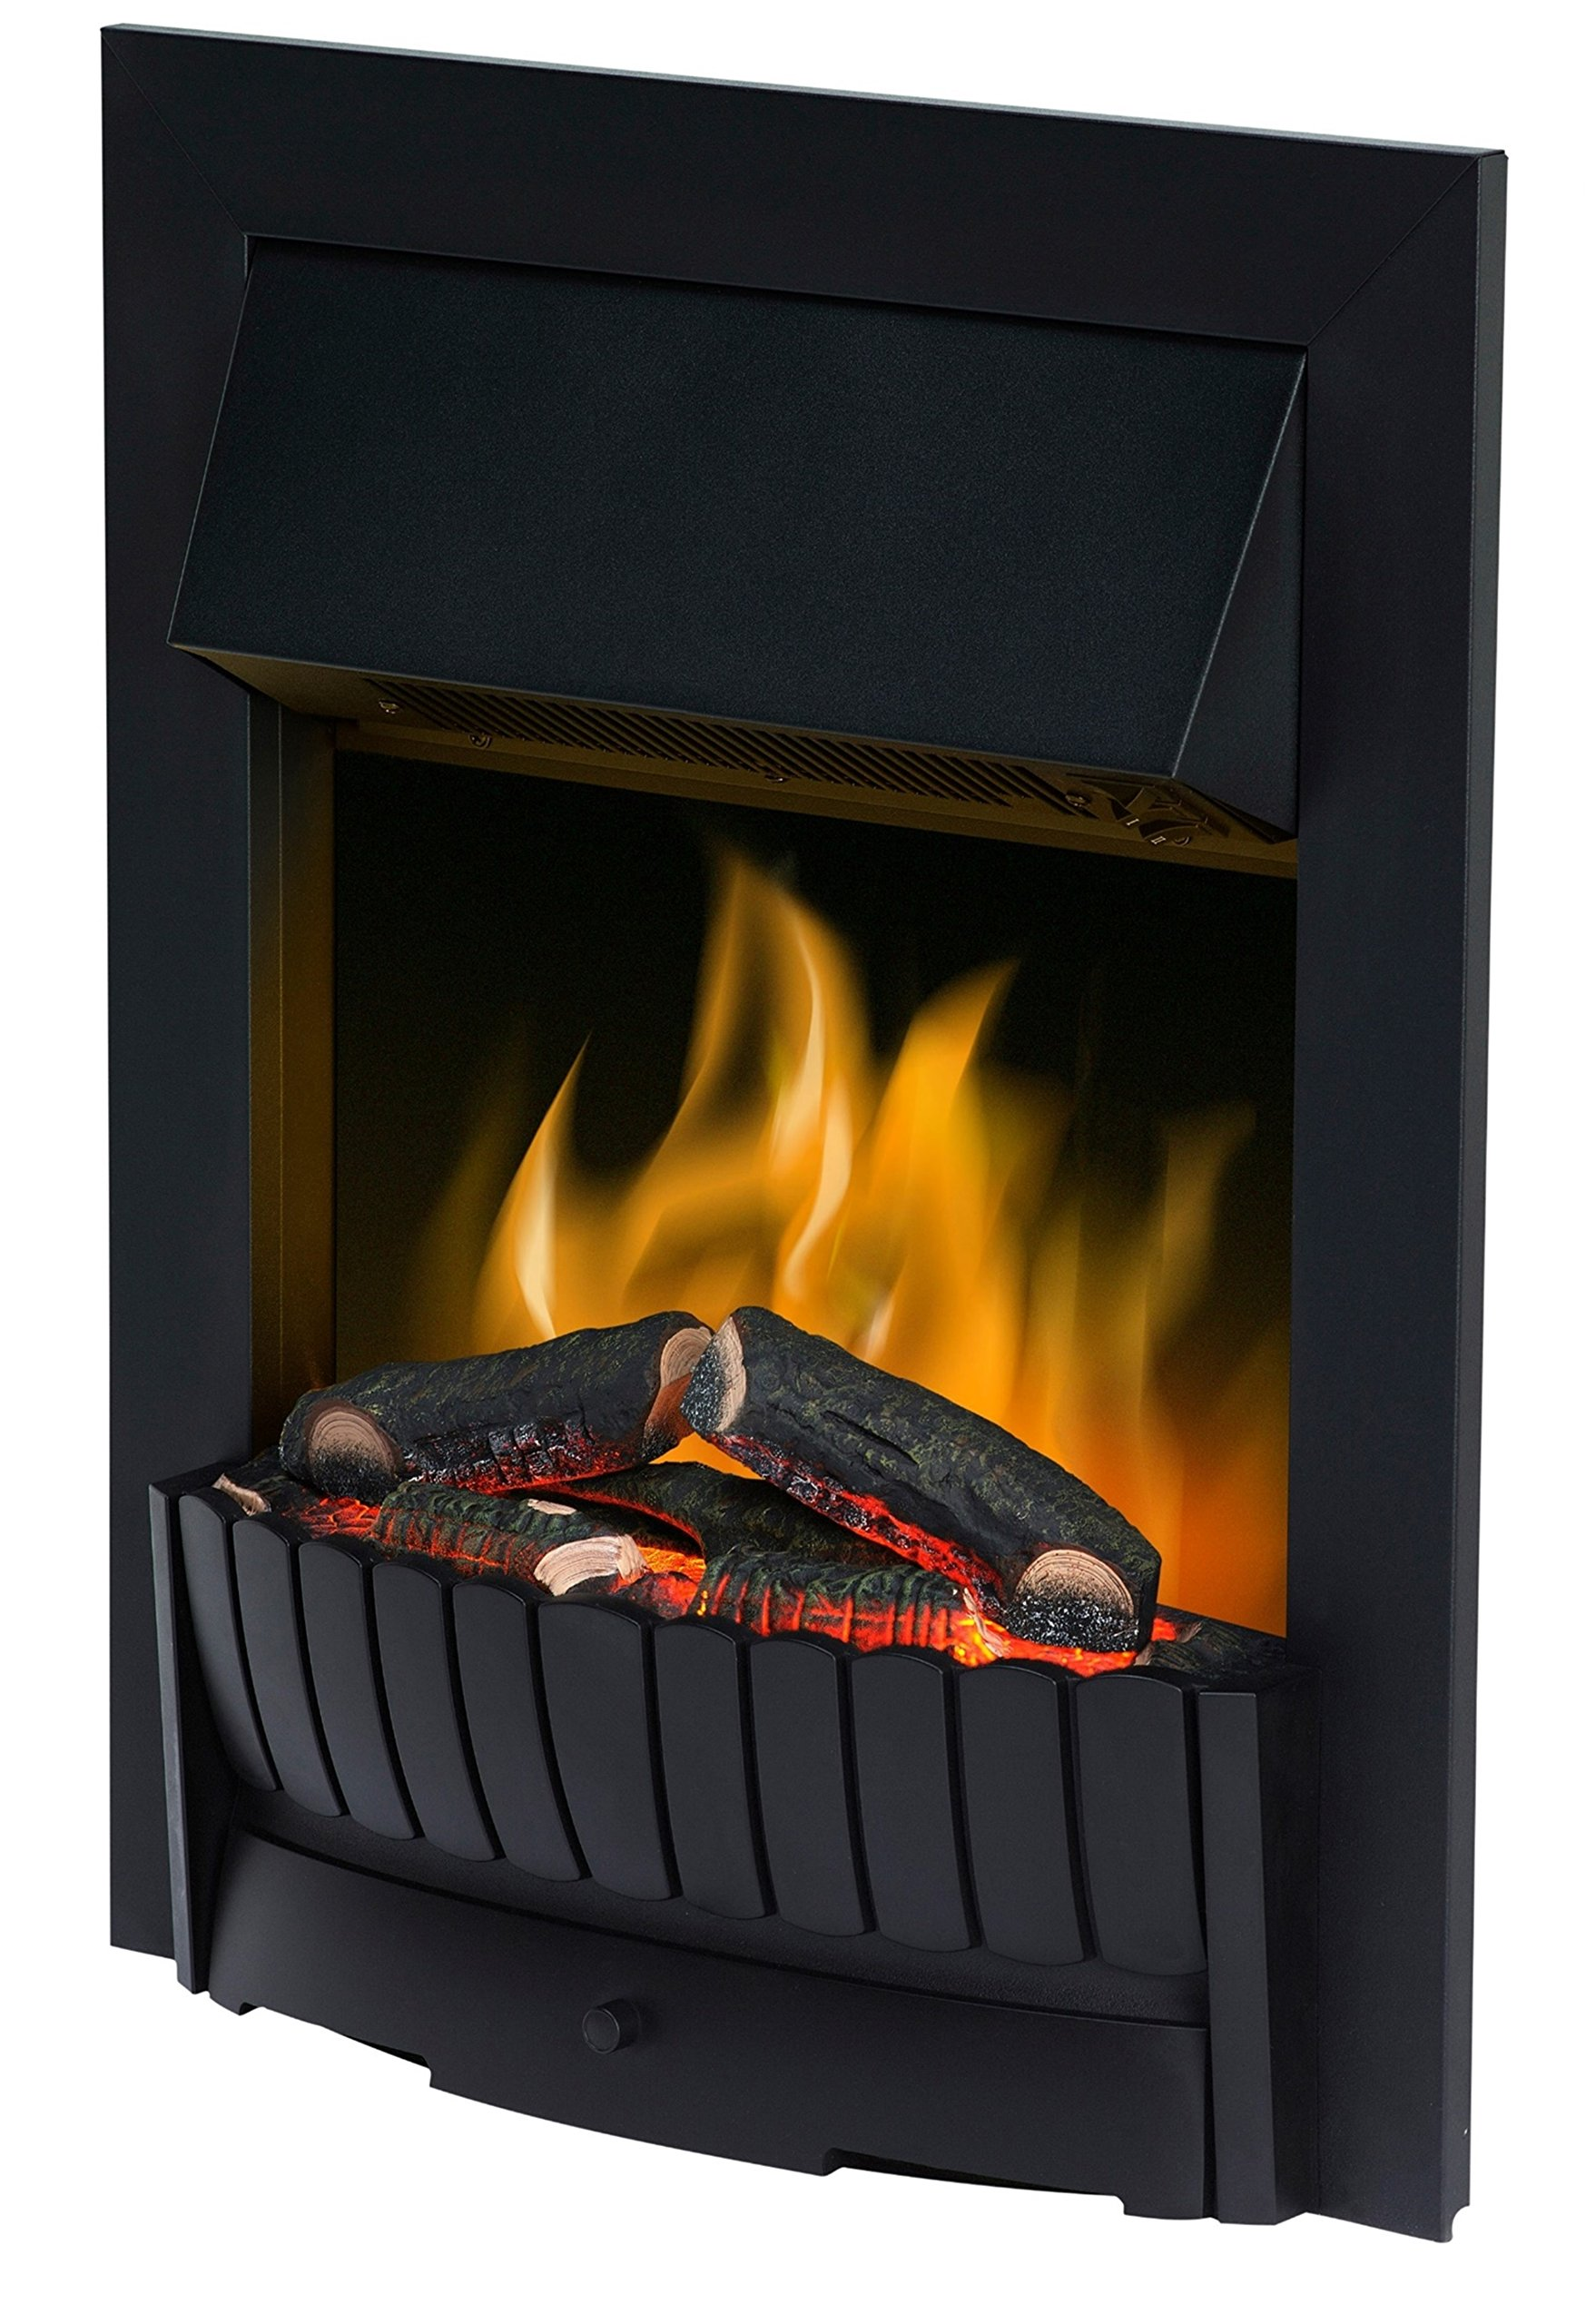 81gSiAOC54L - Dimplex CMT20 Clement Electric Inset Fire with Optiflame Effect, 2 Kw, 230 W